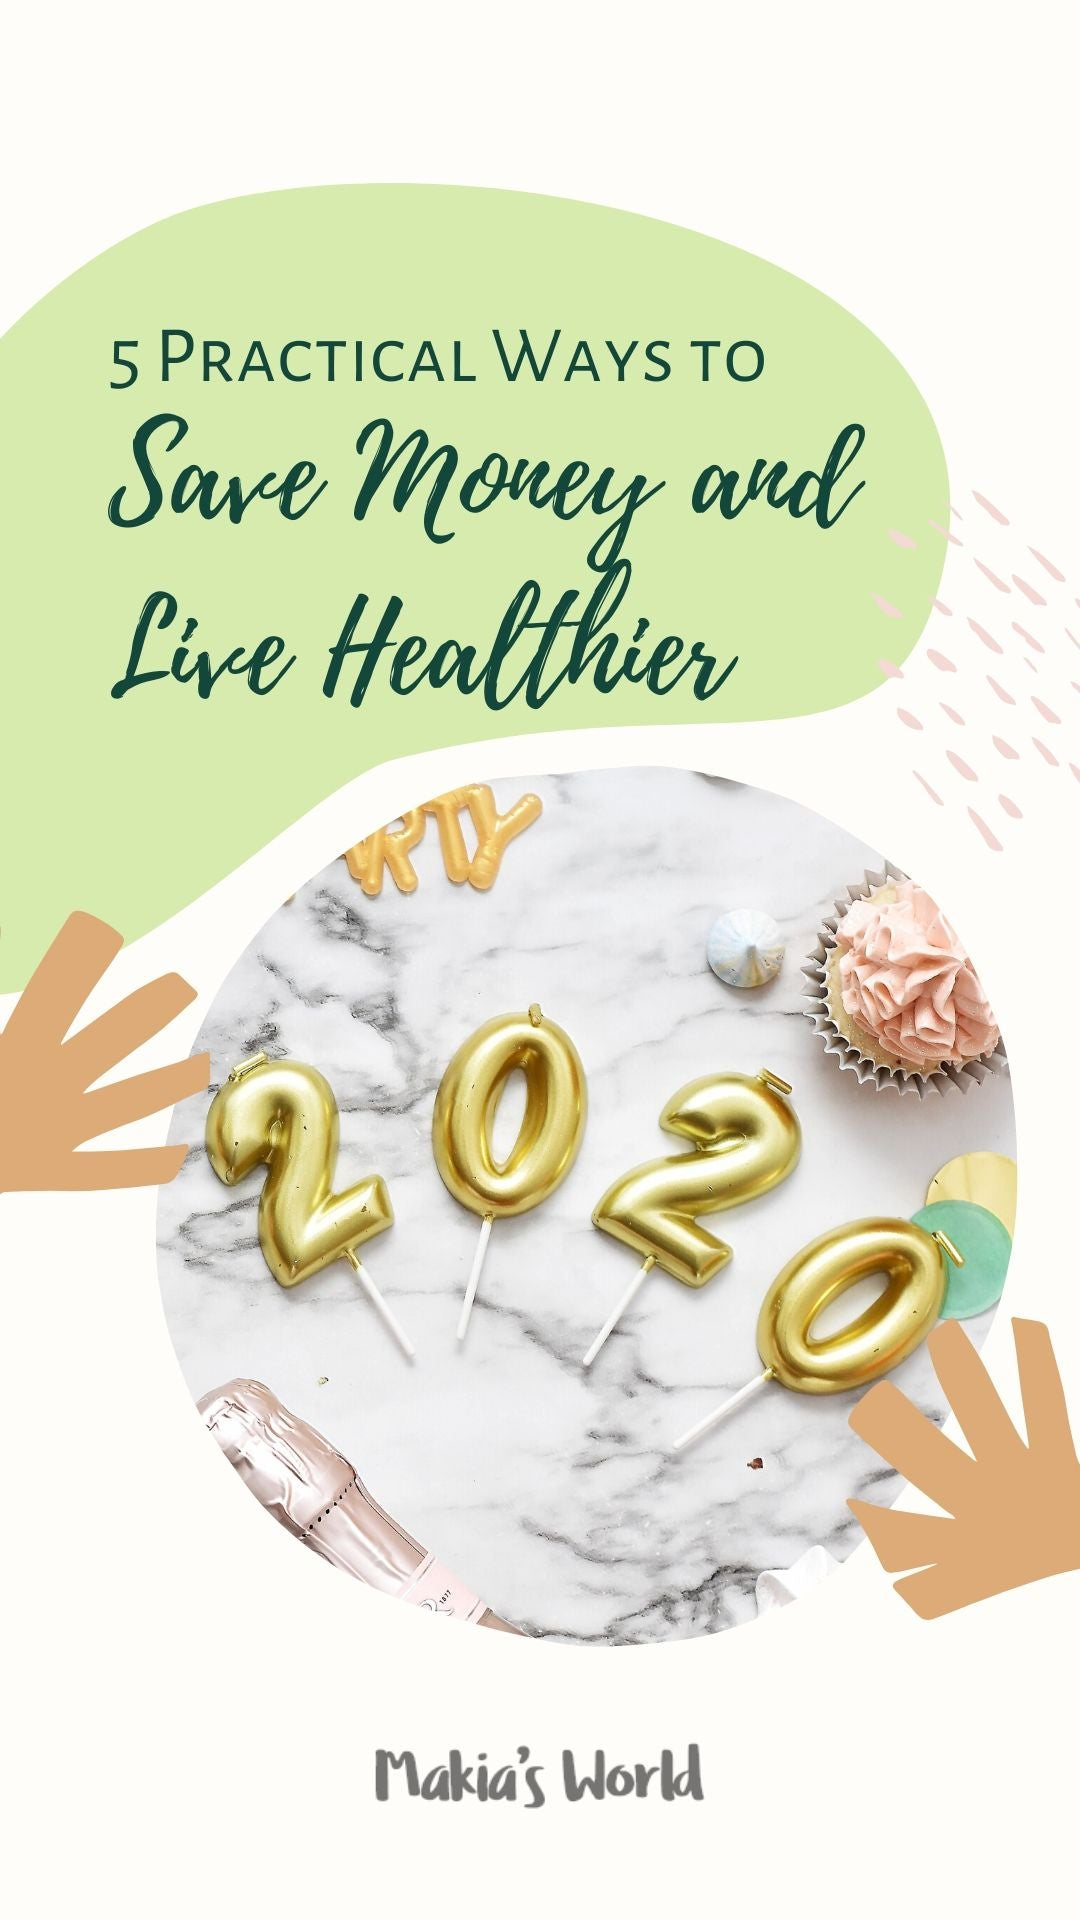 5 Practical Ways to Save Money and Live Healthier in 2020